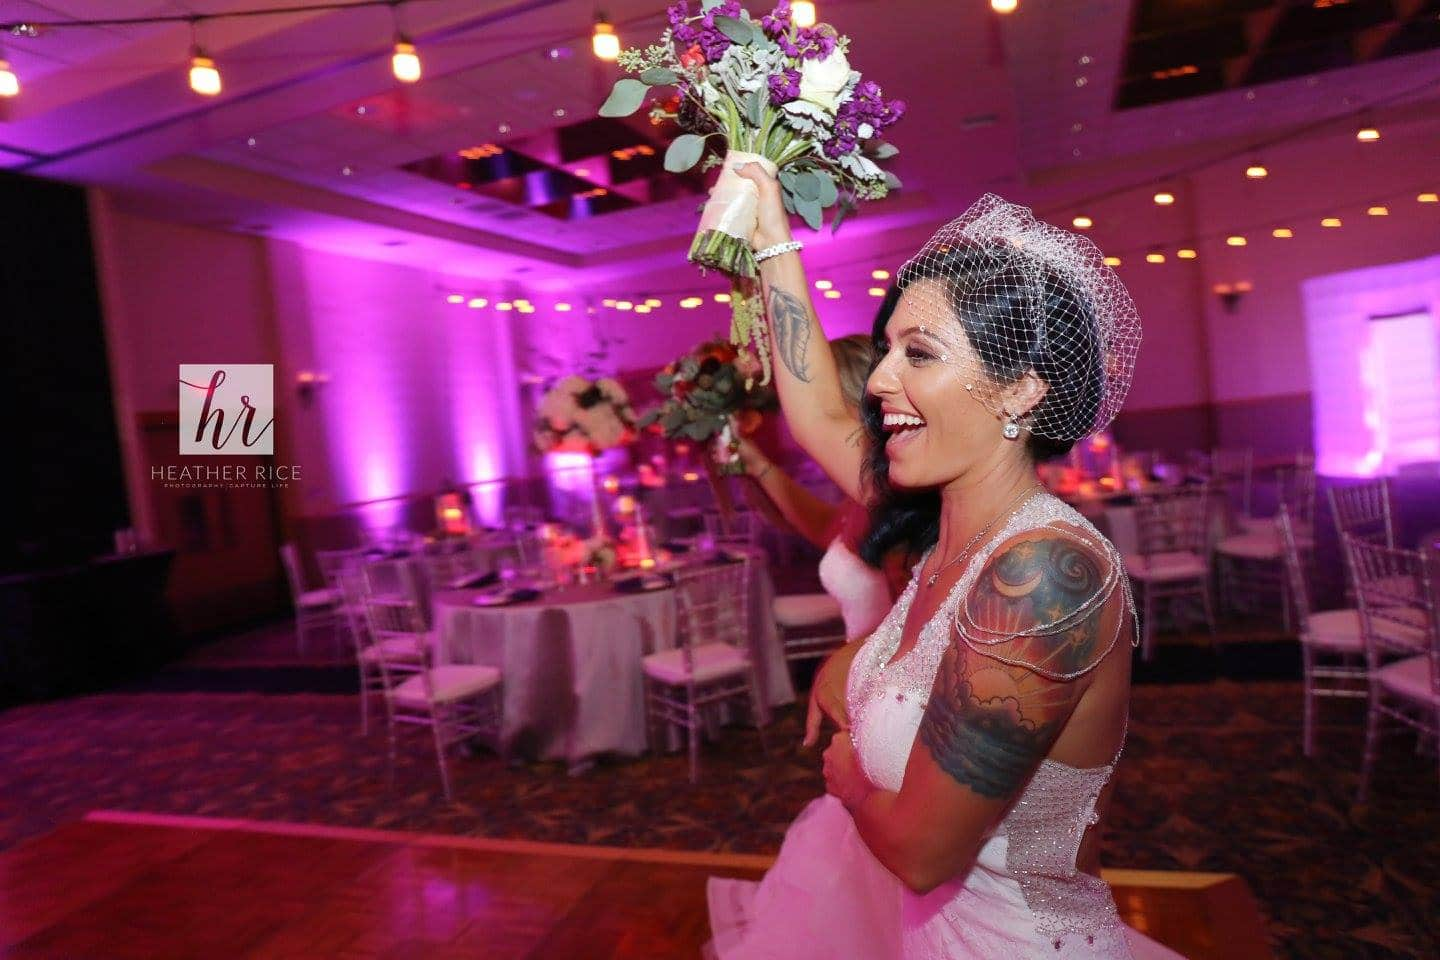 Bride tossing her wedding bouquet in the ballroom